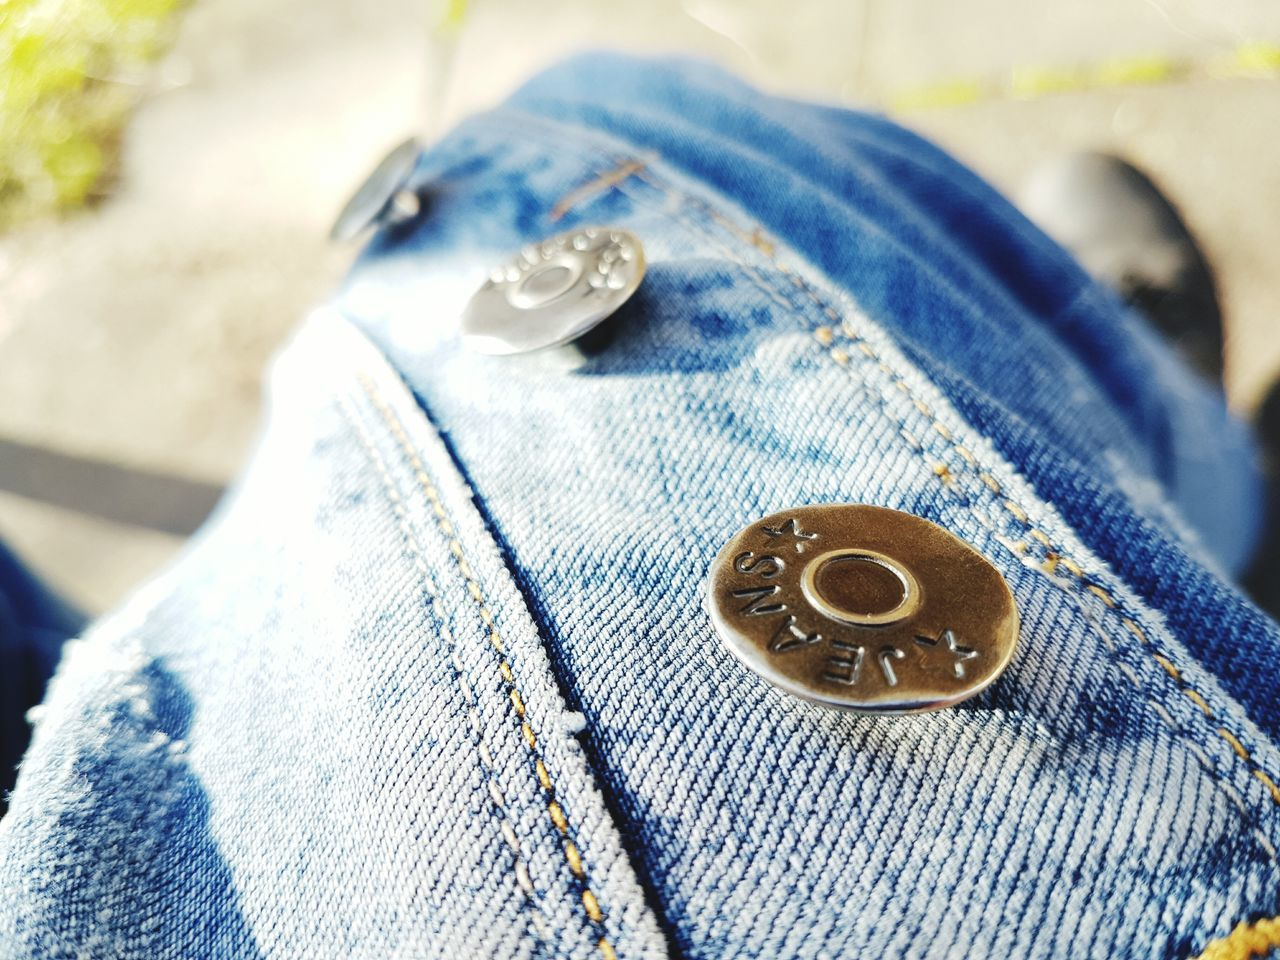 jeans, textile, close-up, fabric, no people, textile industry, fashion, sewing, button, day, outdoors